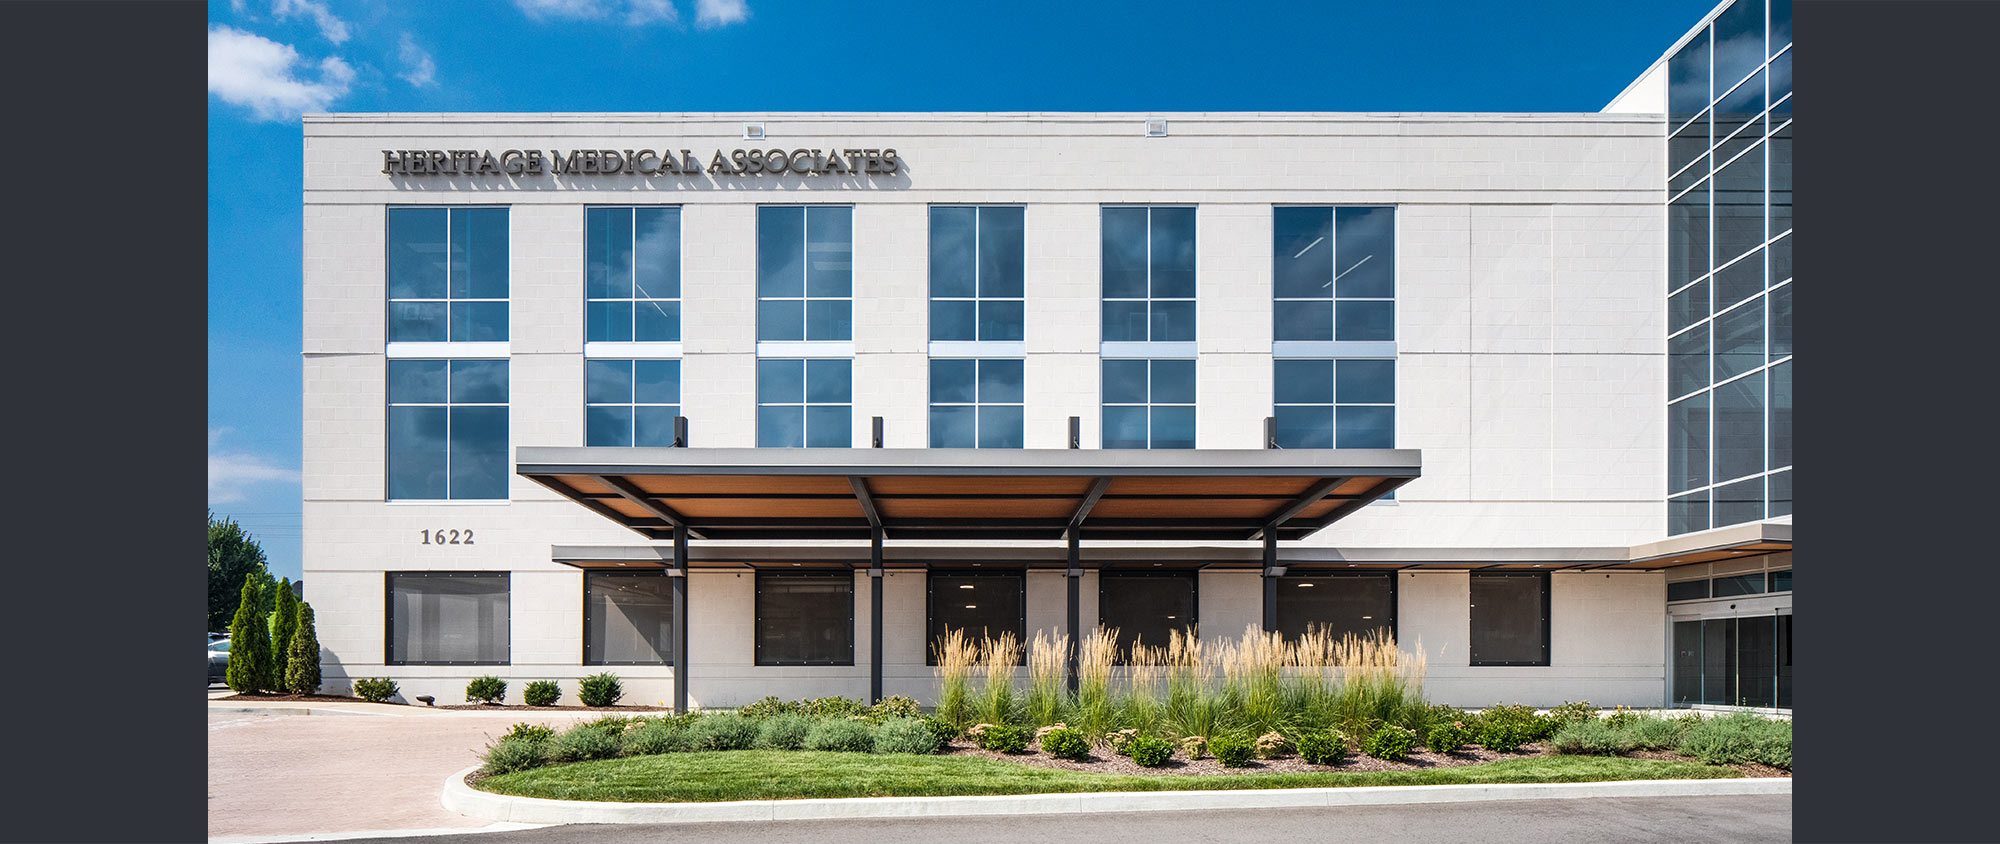 Heritage Medical Associates Medical Office Building / Clinic